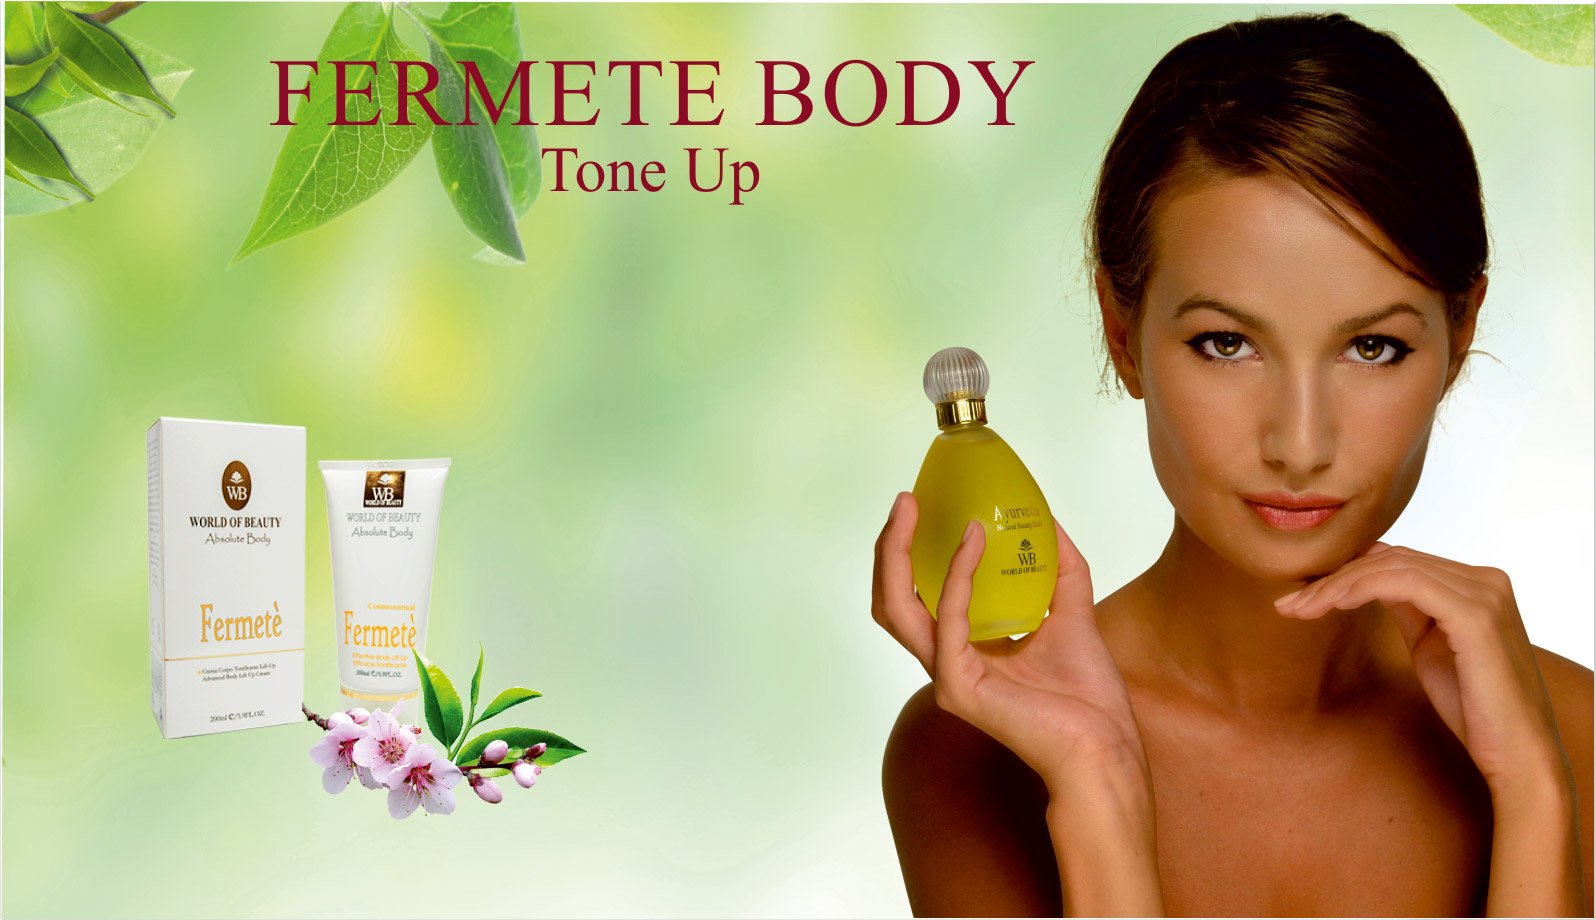 Fermete Body - Tone Up - World of Beauty